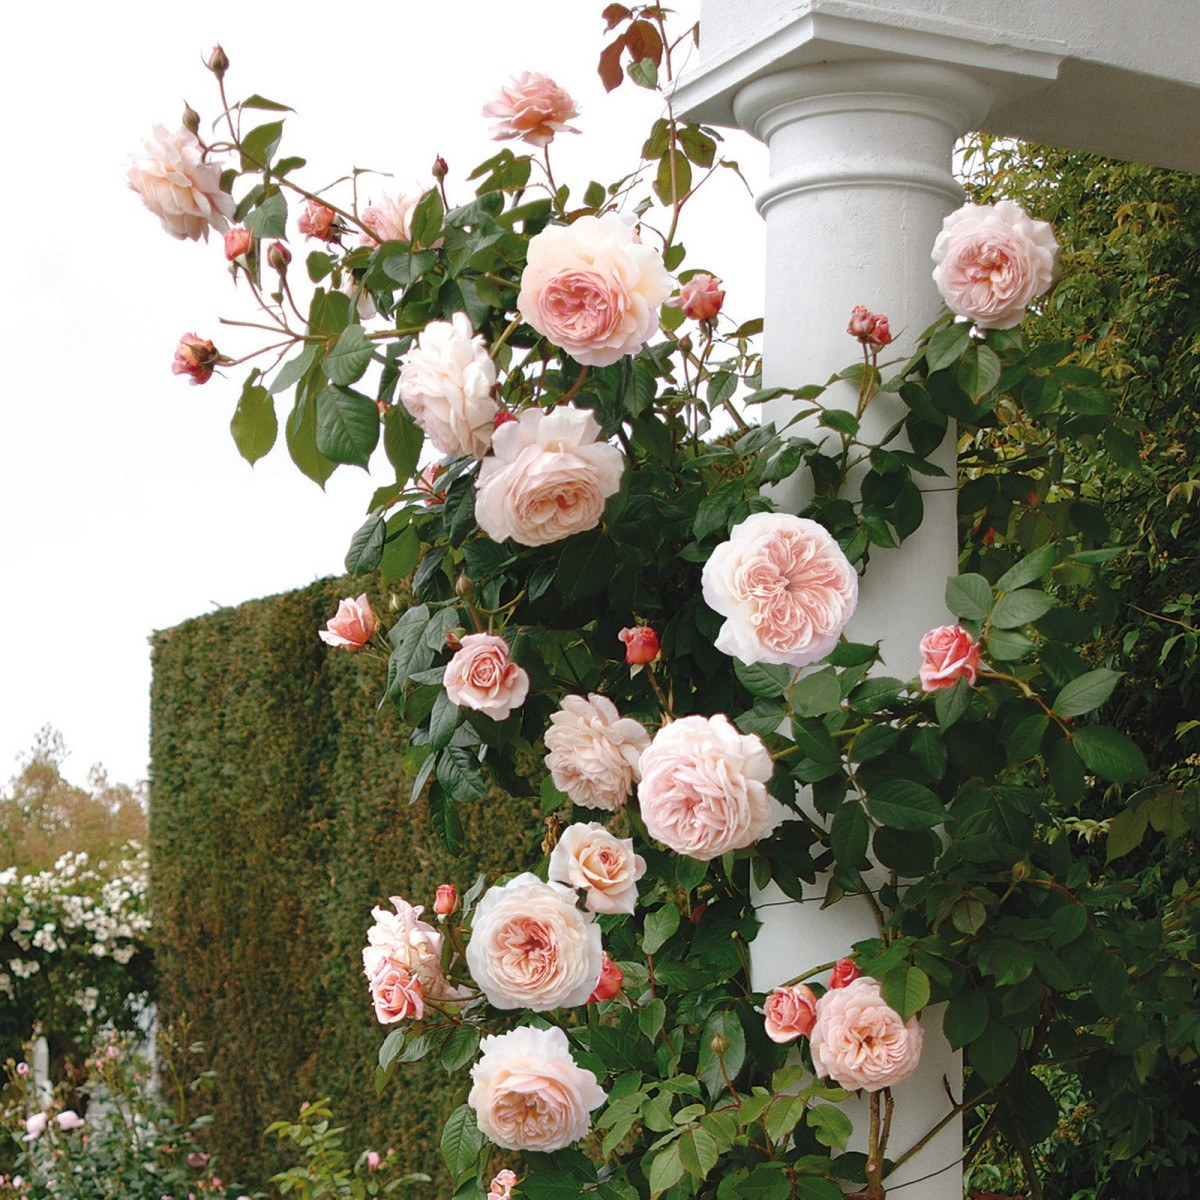 A Shropshire Lad. Named by the grower, David Austen, himself fom Shropshire, in honour of A.E.Housman's cycle of poems